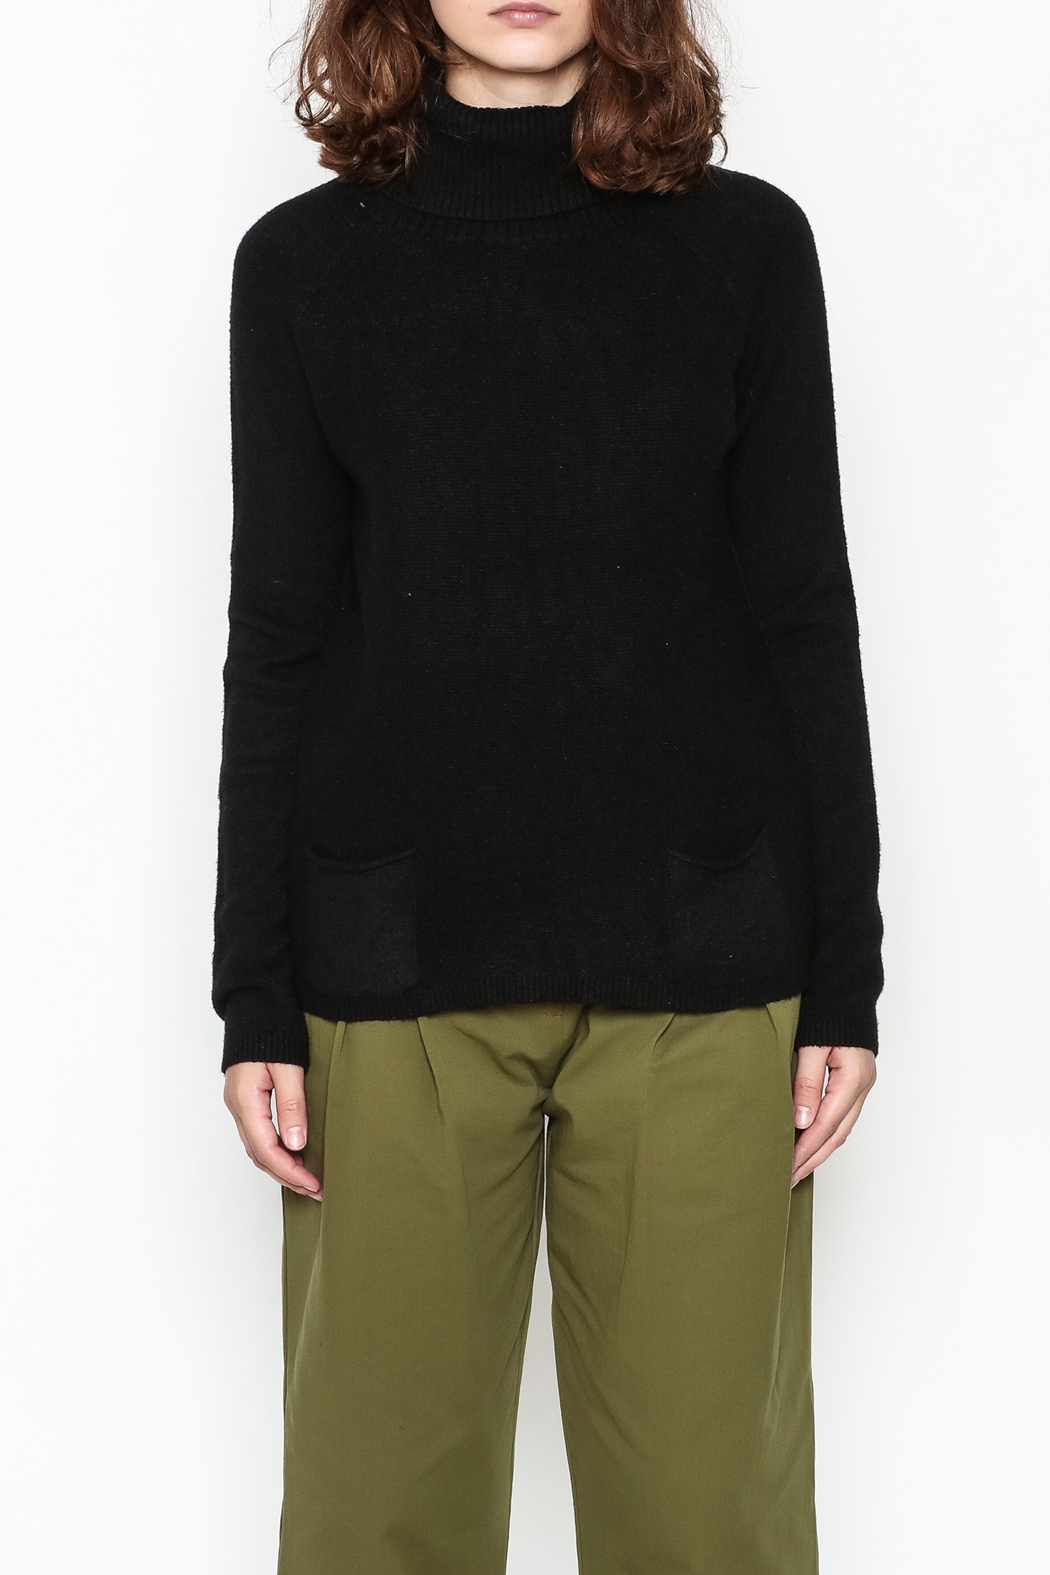 Lovestitch Pocket Turtleneck Pullover - Front Full Image